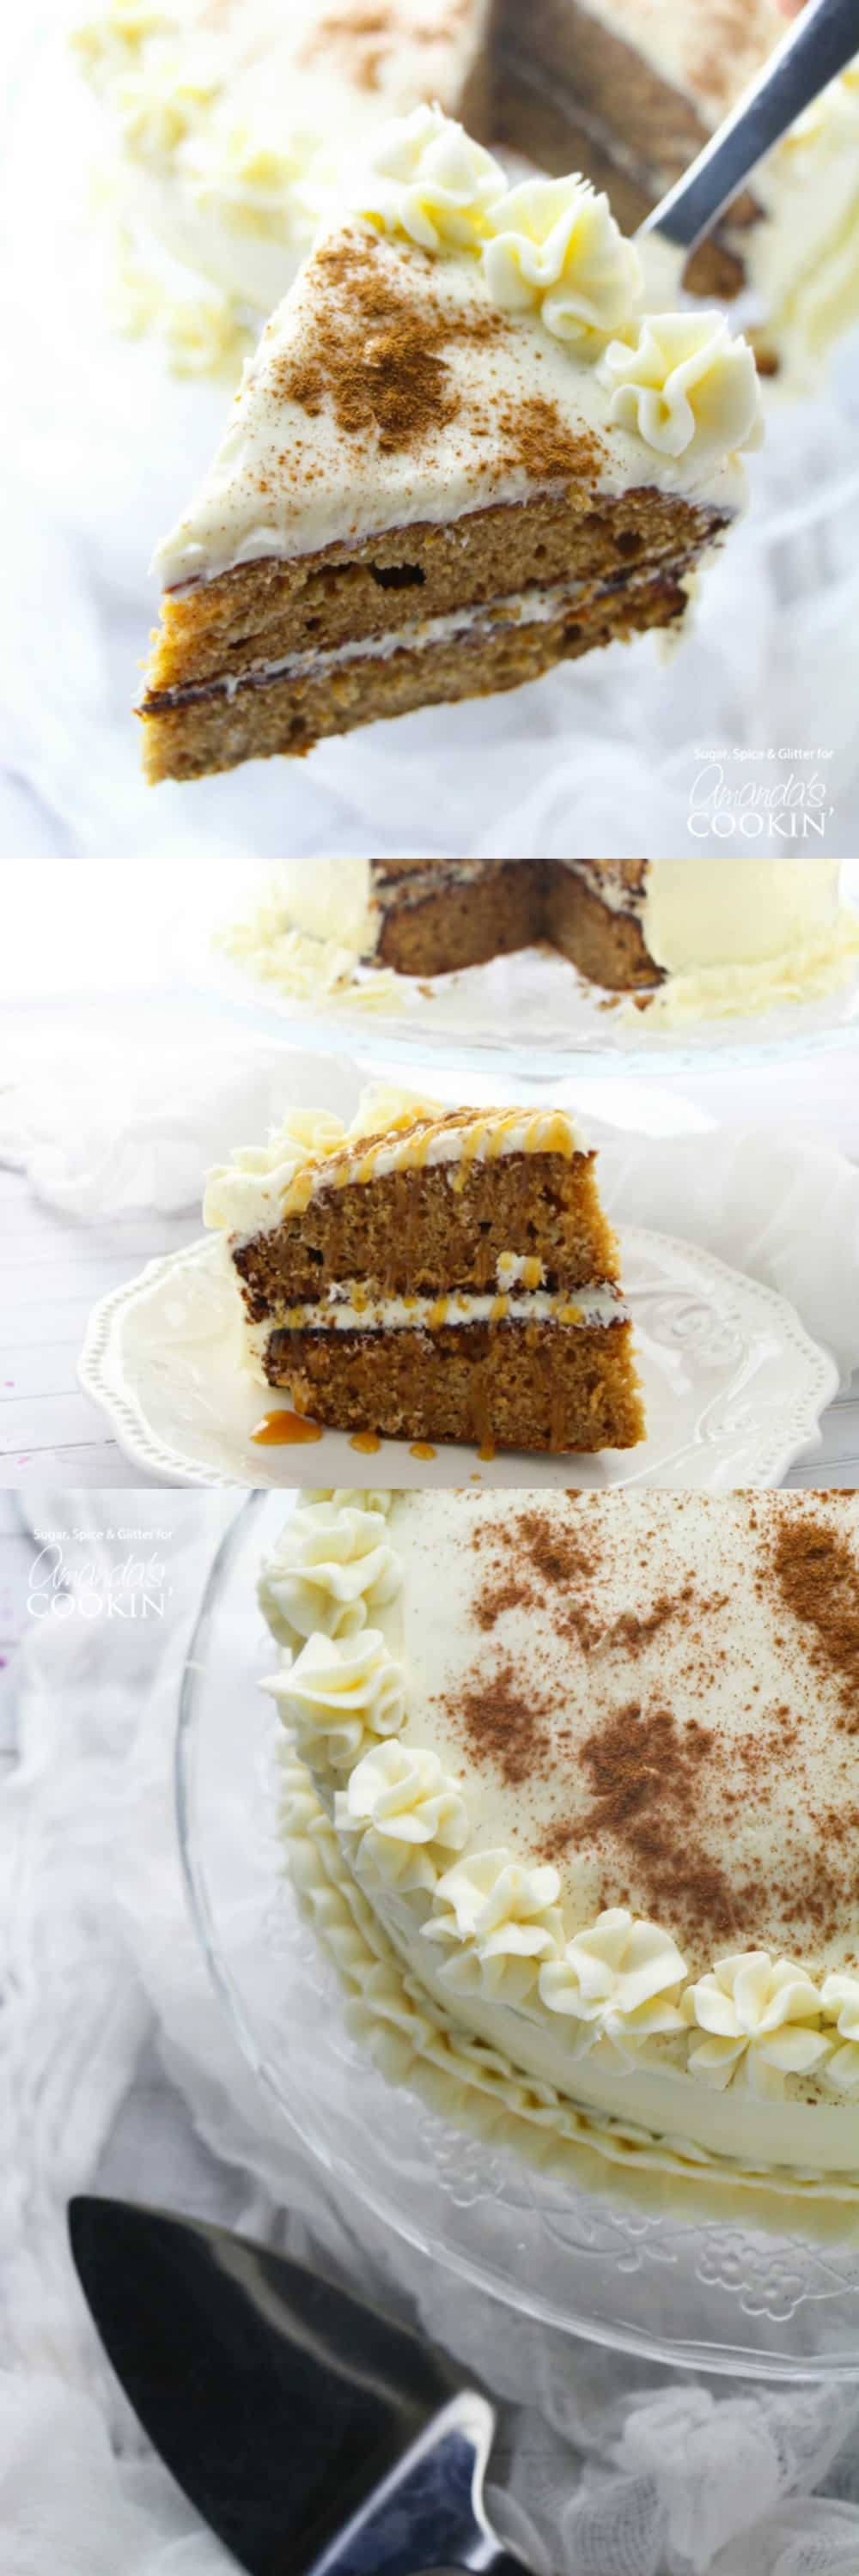 This spice cake has all of the classic flavors of fall - pumpkin spice, cinnamon, apple, even a hint of molasses then topped with a cream cheese frosting.